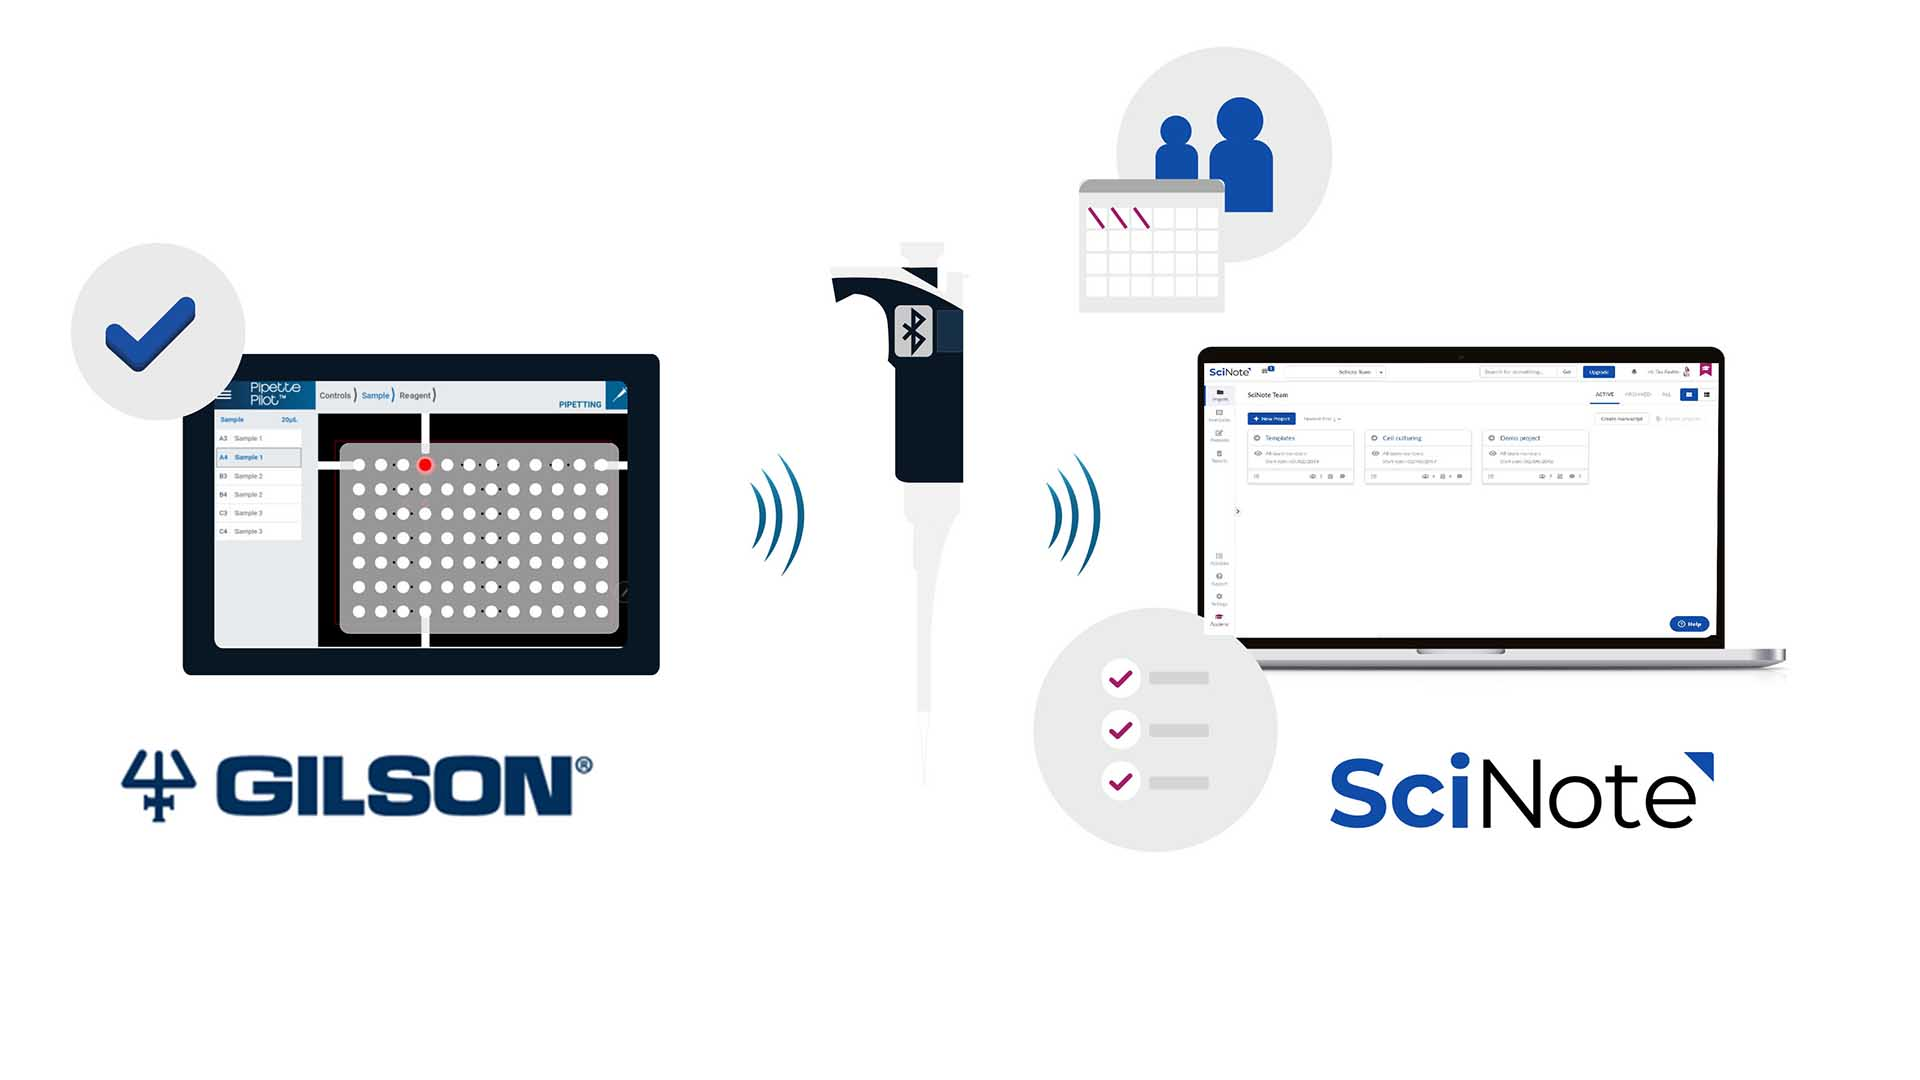 Gilson and SciNote integration